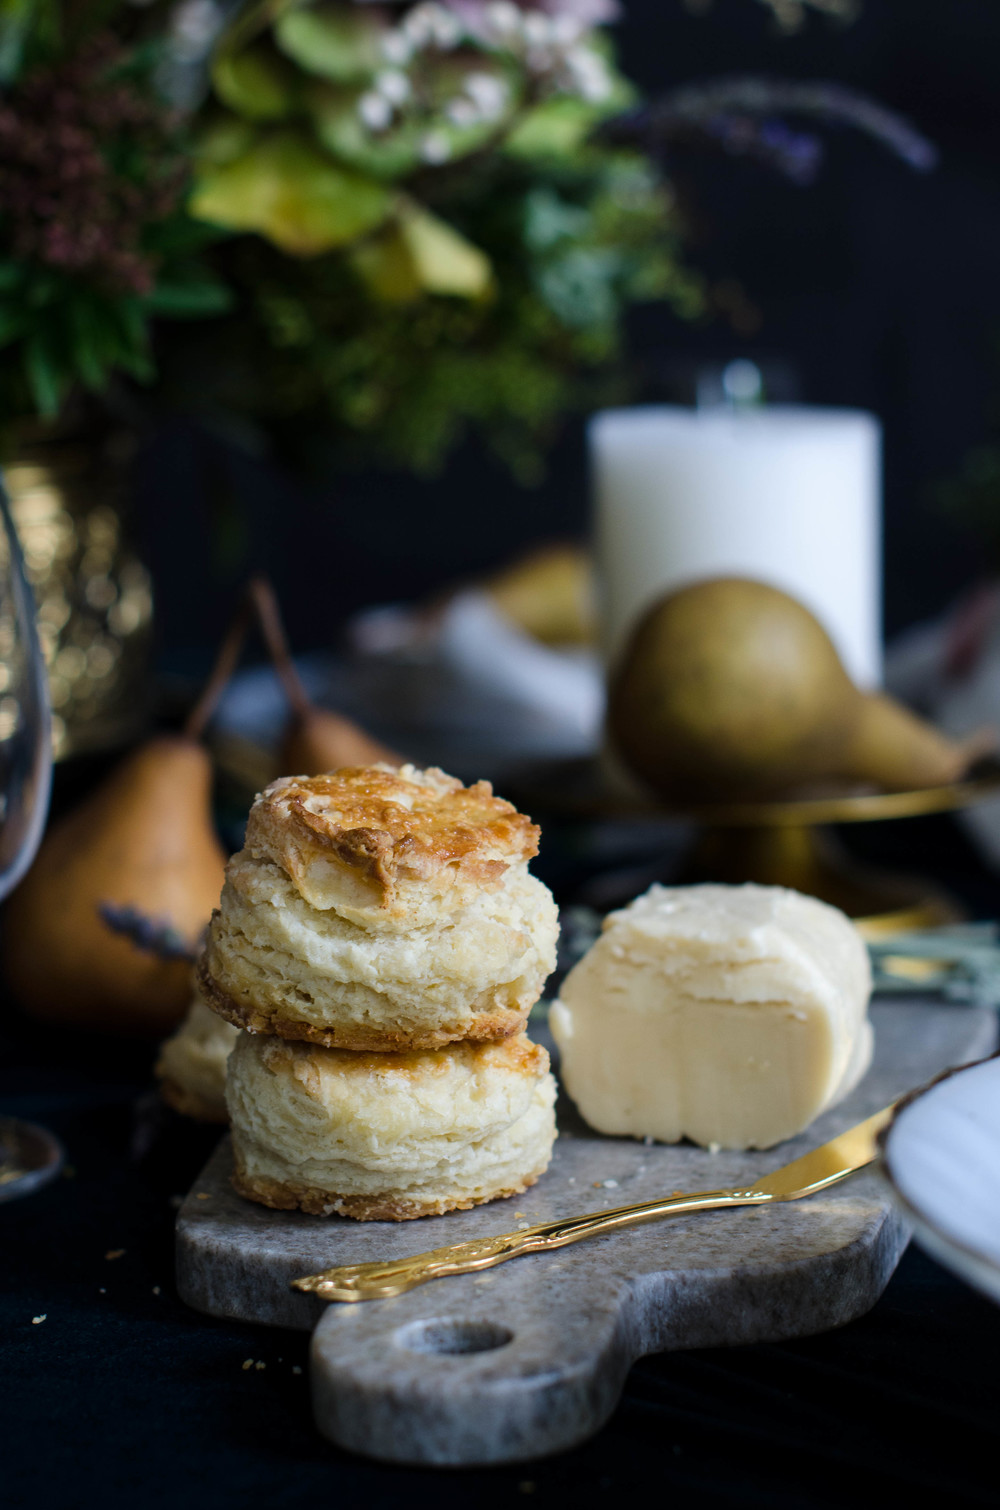 The biscuits are even better when paired with Salted Maple Butter